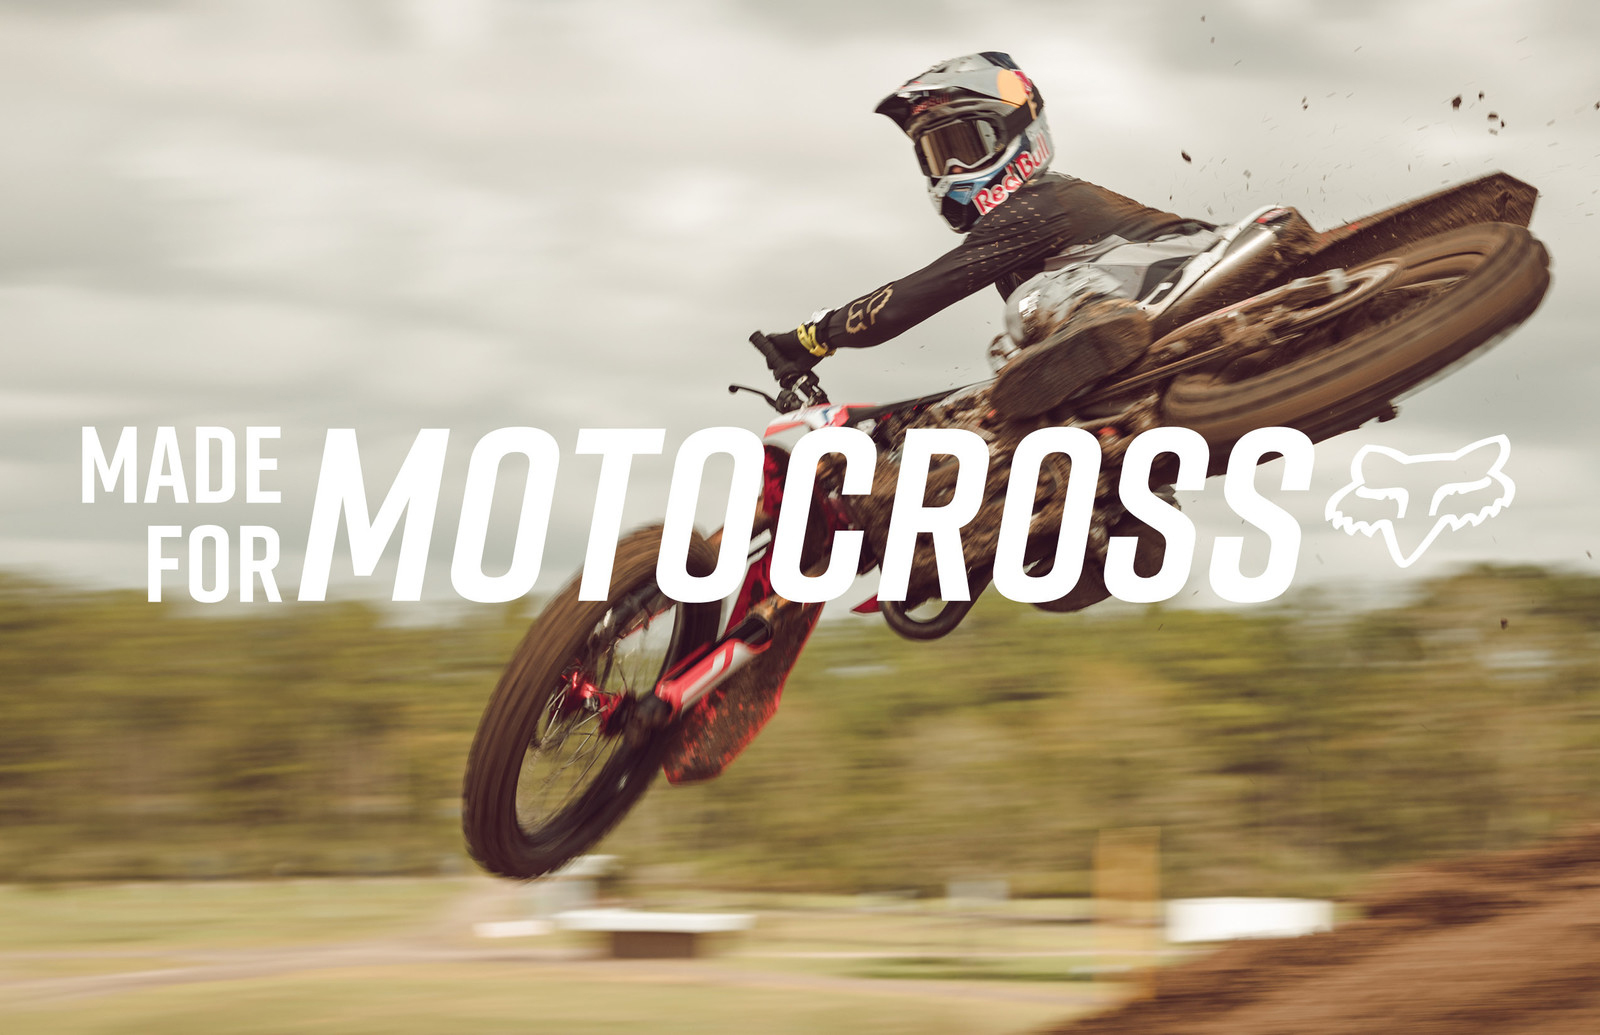 FOX-ROCZEN-MADE-FOR-MOTOCROSS